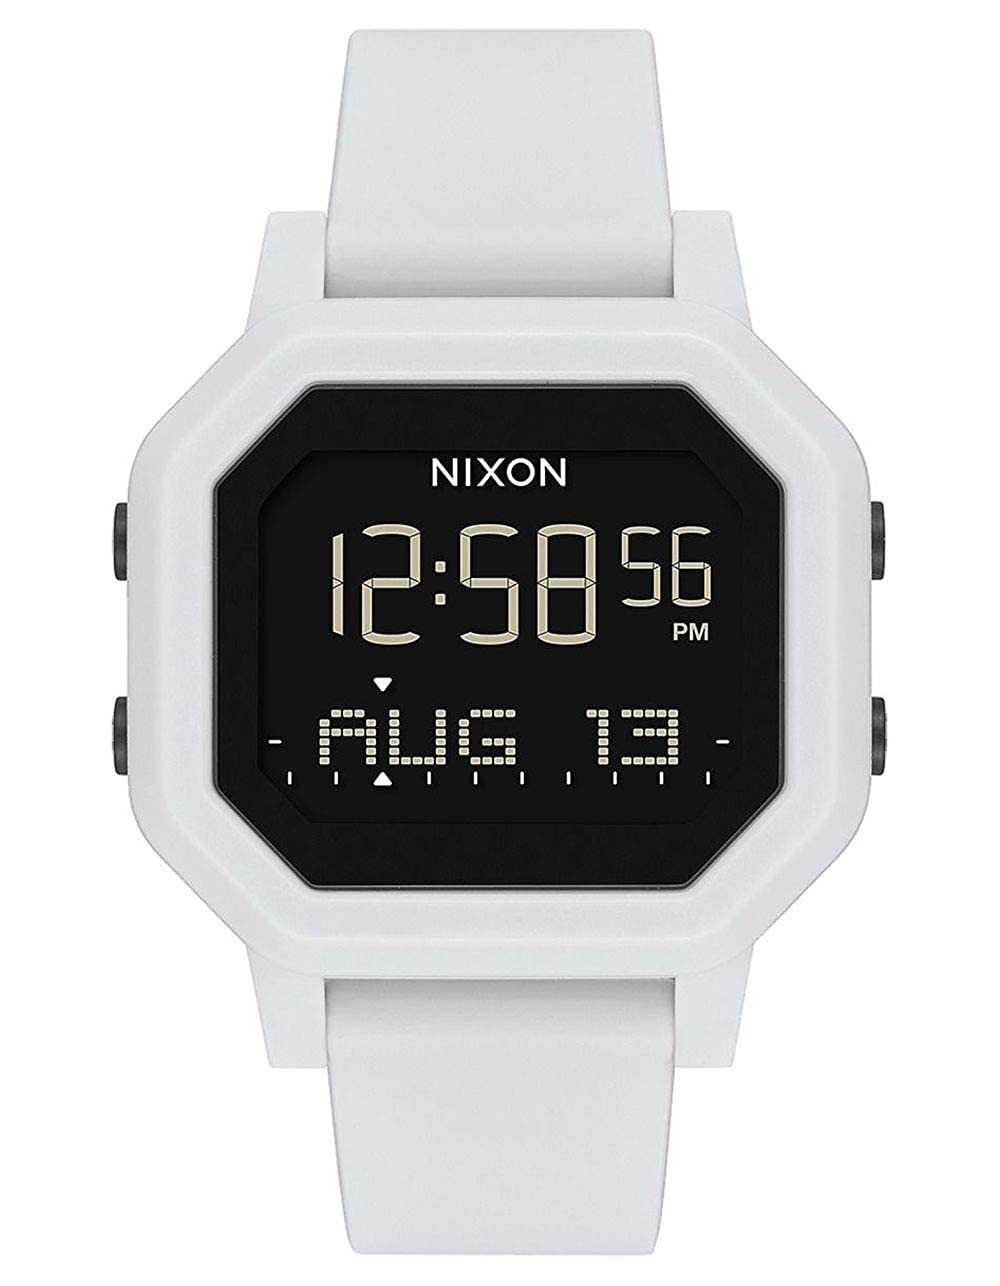 Soft Resistant Surf Digital Water Siren Nixon Band Silicone Watch38mmUltra Women's QWdorBeCx